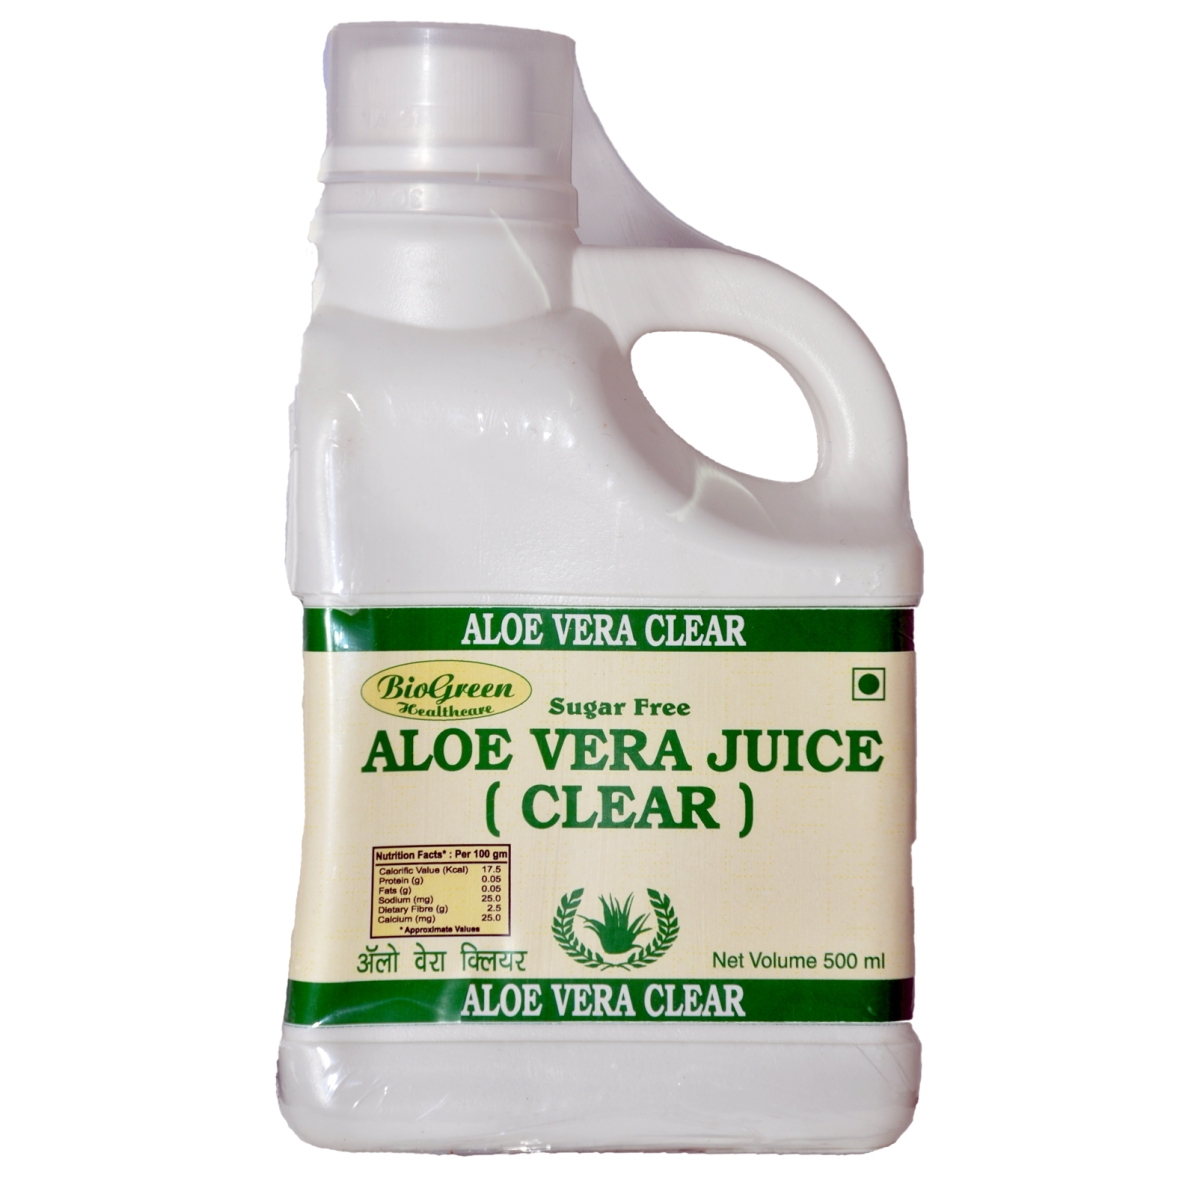 Aloe vera Clear Juice In Tinsukia